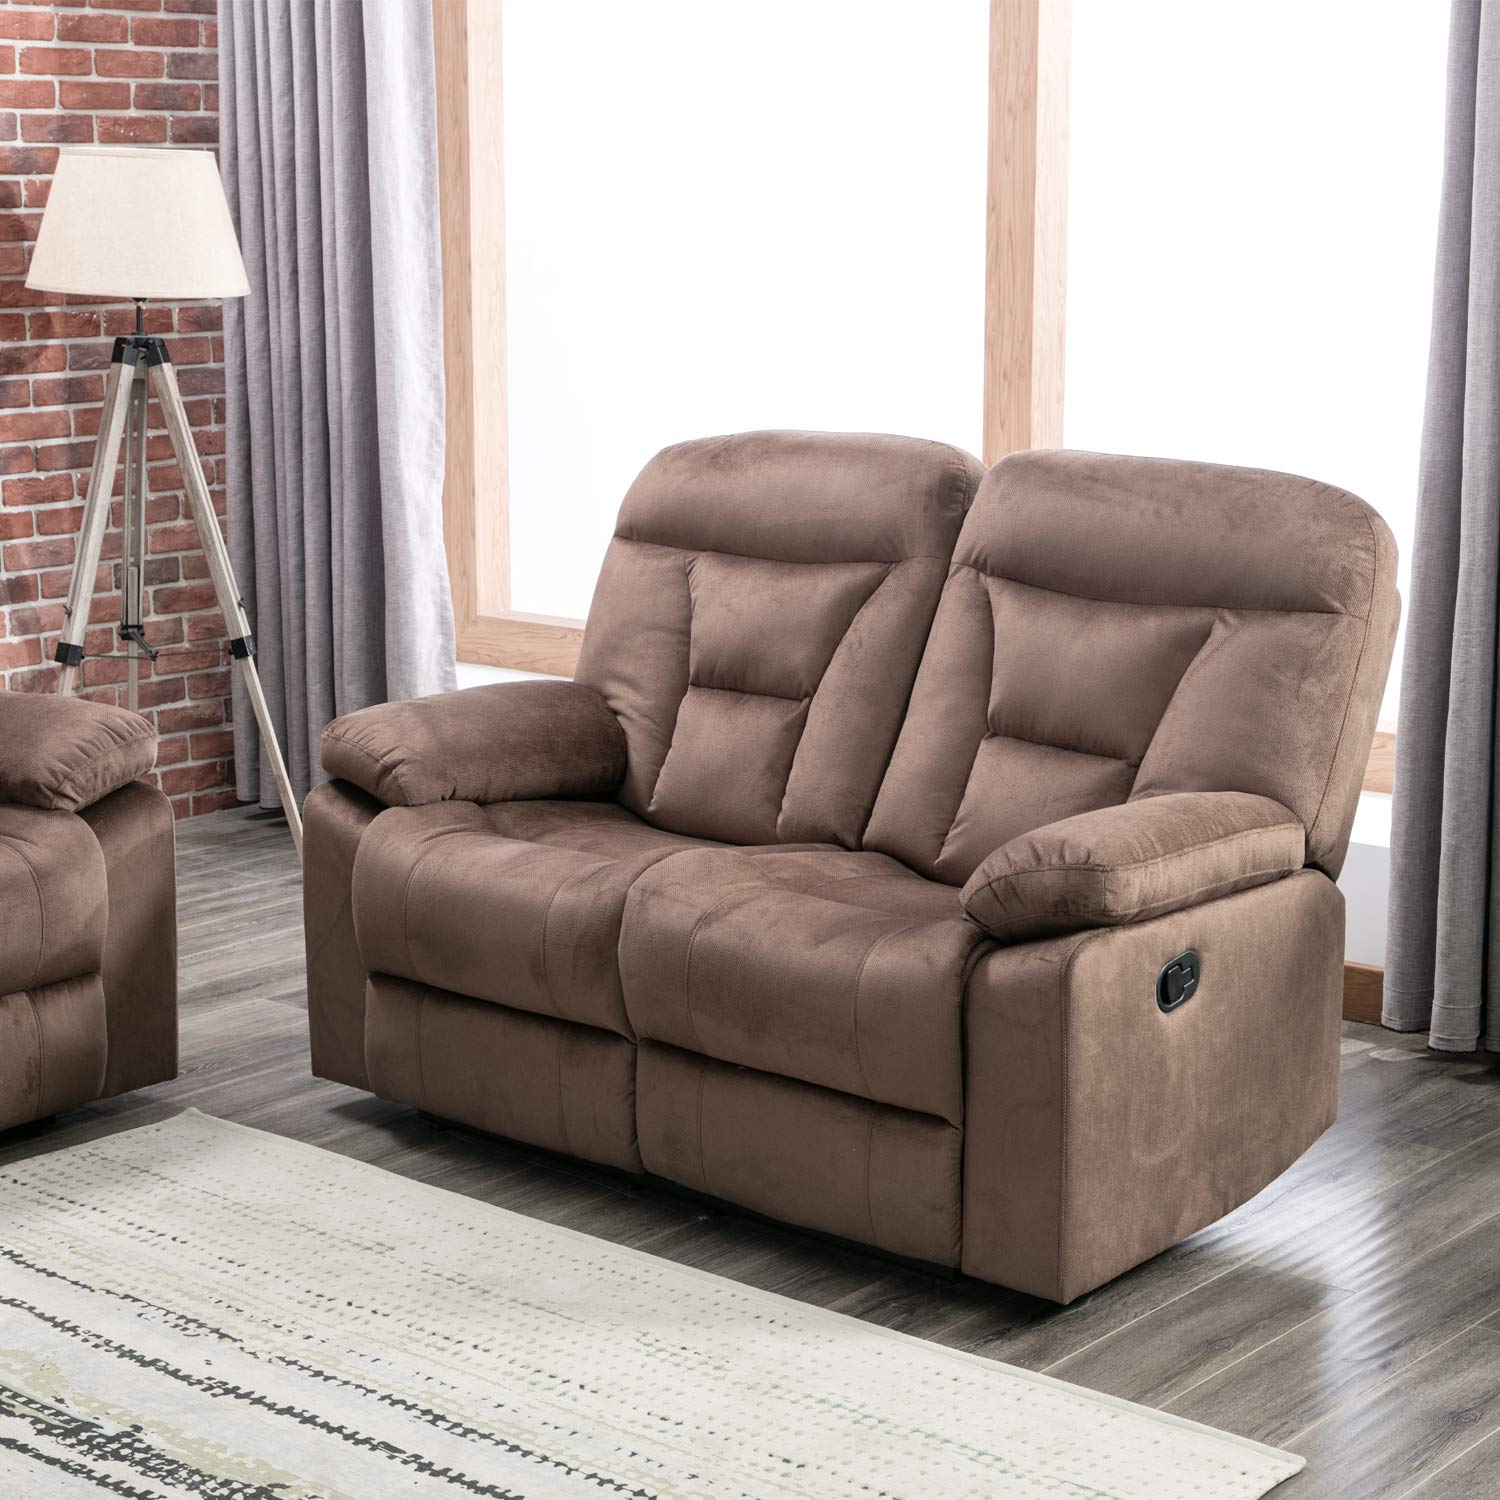 Canmov soft warm microfiber velvet recliner sofa living room chair motion sofa recliner couch manual reclining sofa loveseat 2 seater with overstuffed